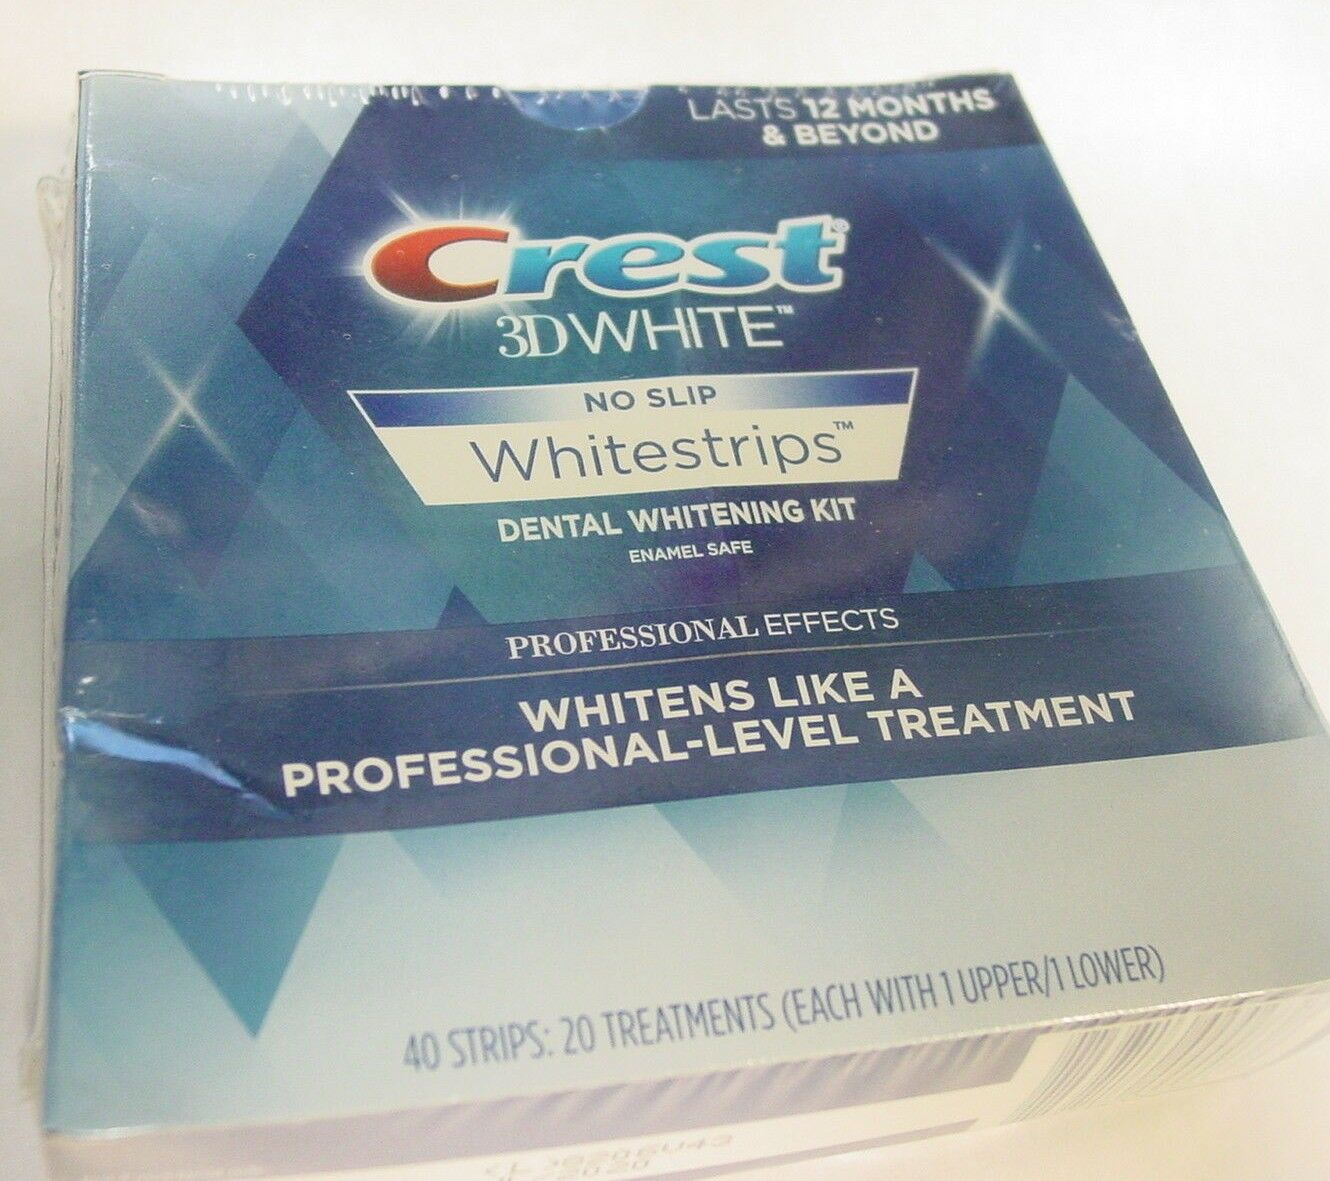 Crest 3D Whitestrips Professional Effects 40 Strips 20 Treatments